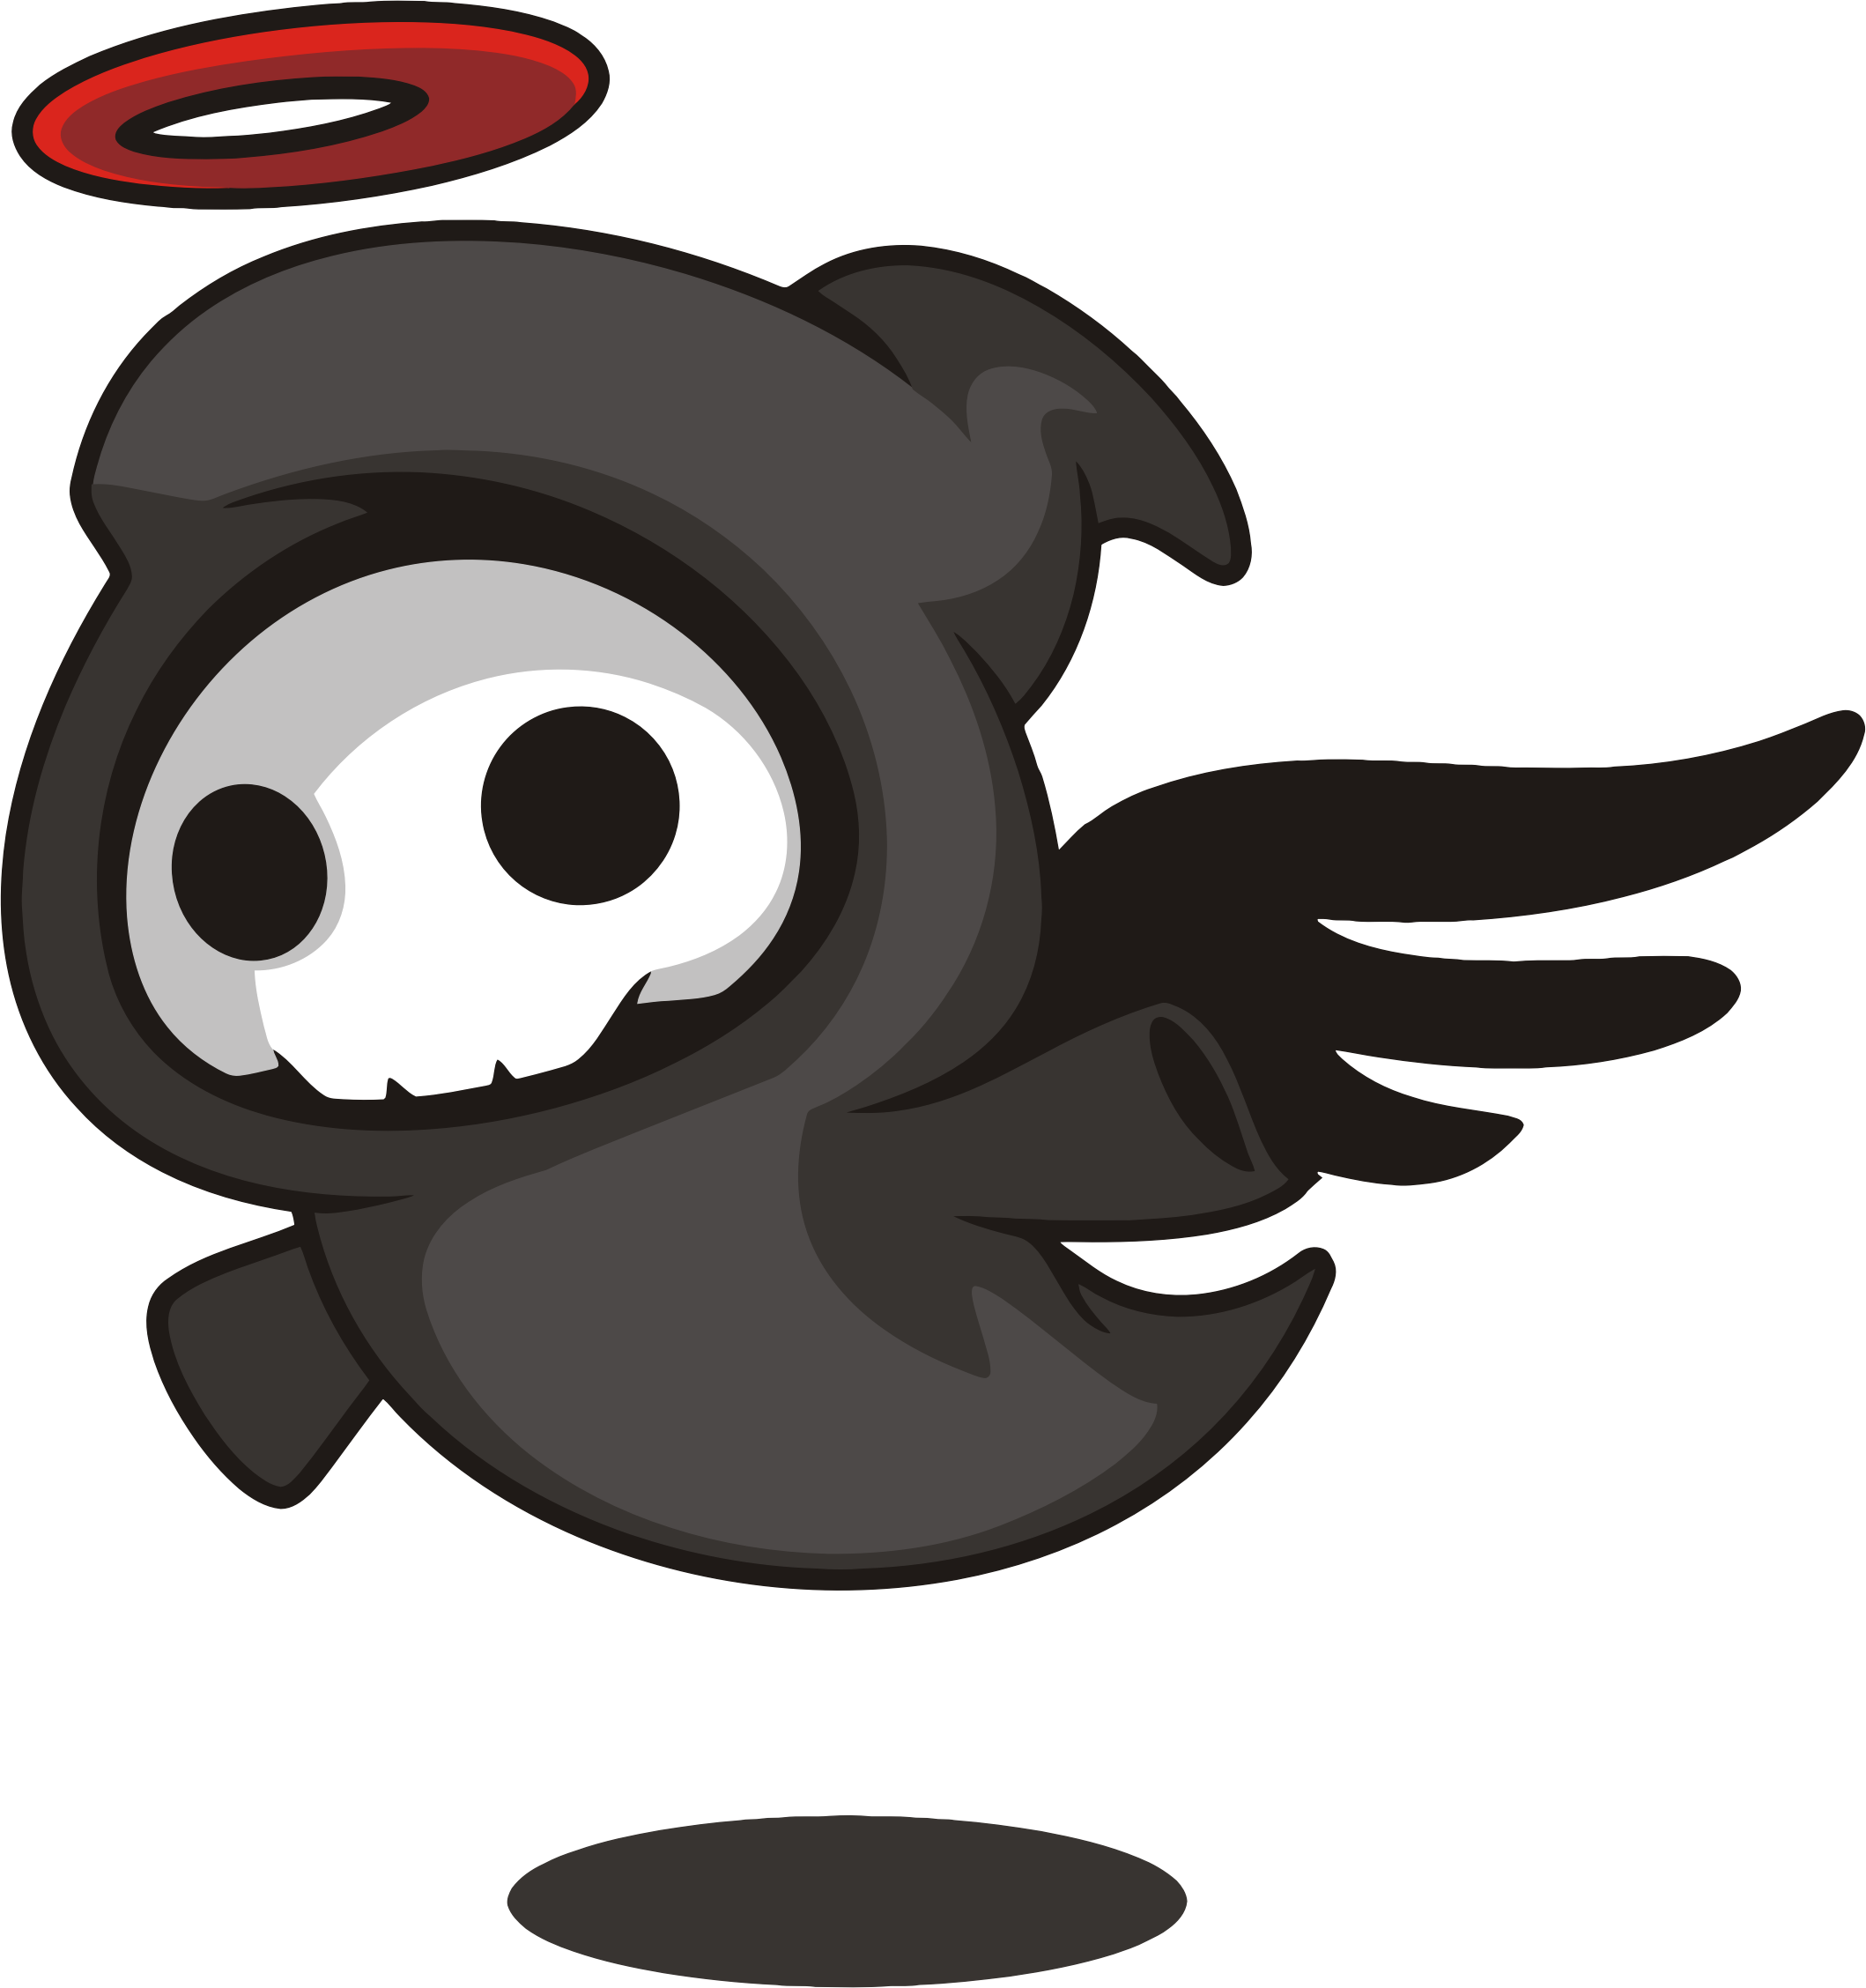 Angel of death png. Cartoon icons free and